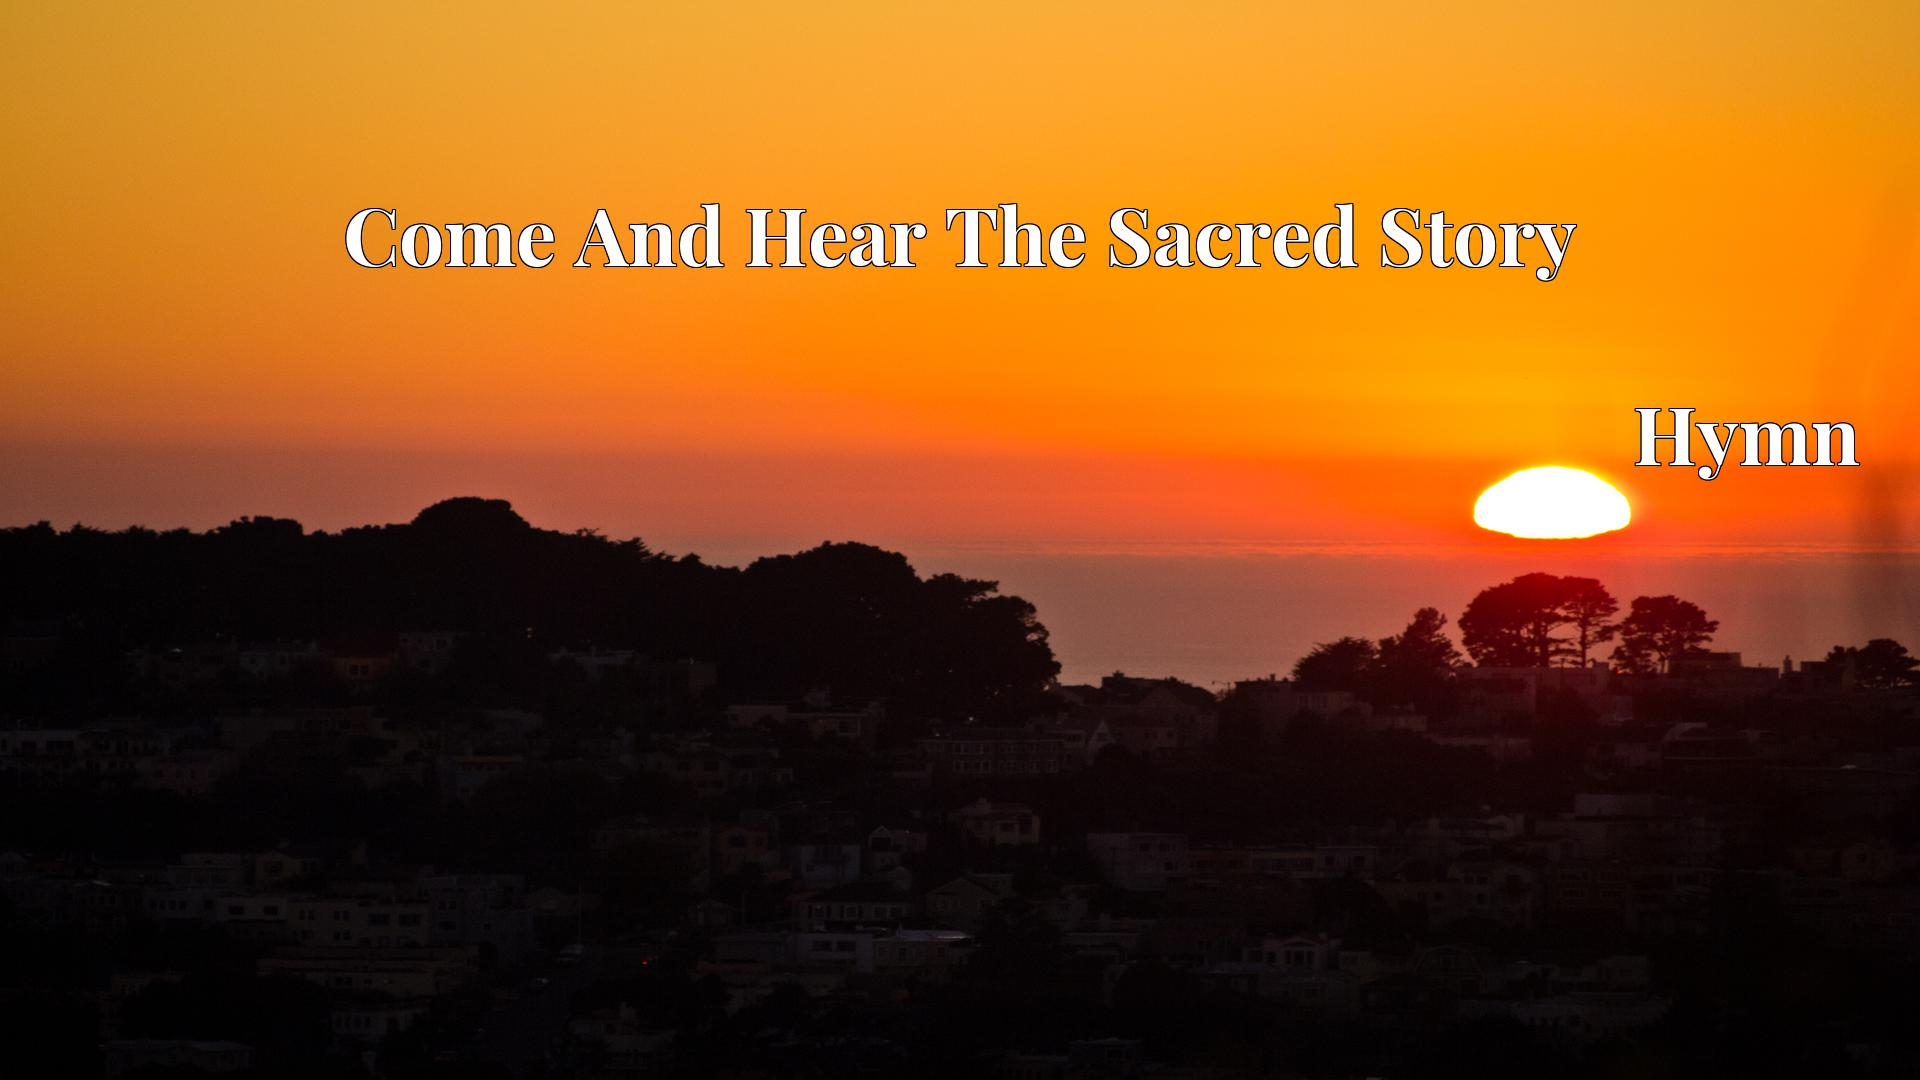 Come And Hear The Sacred Story - Hymn